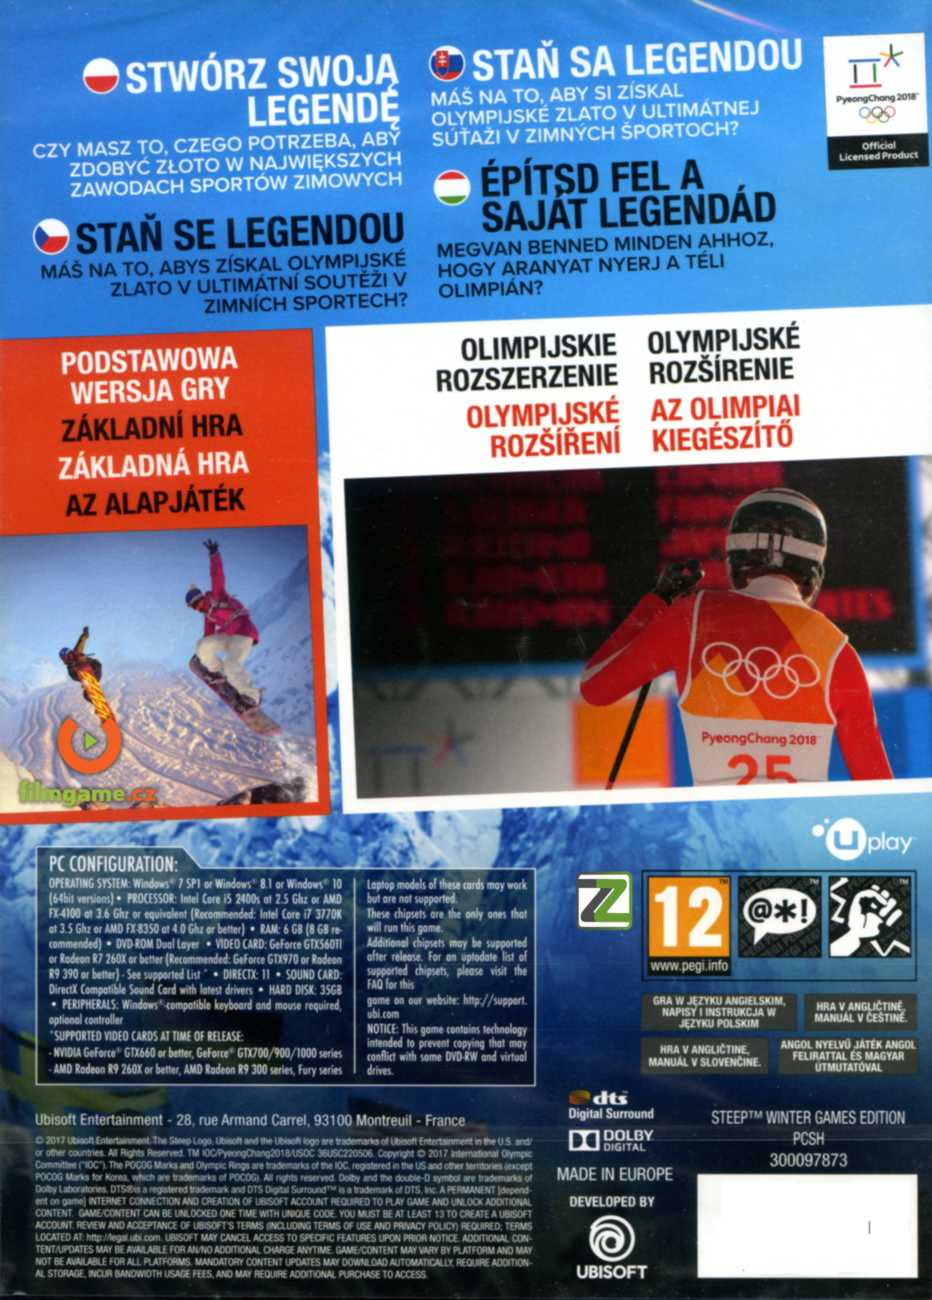 STEEP Winter Games Edition - PC